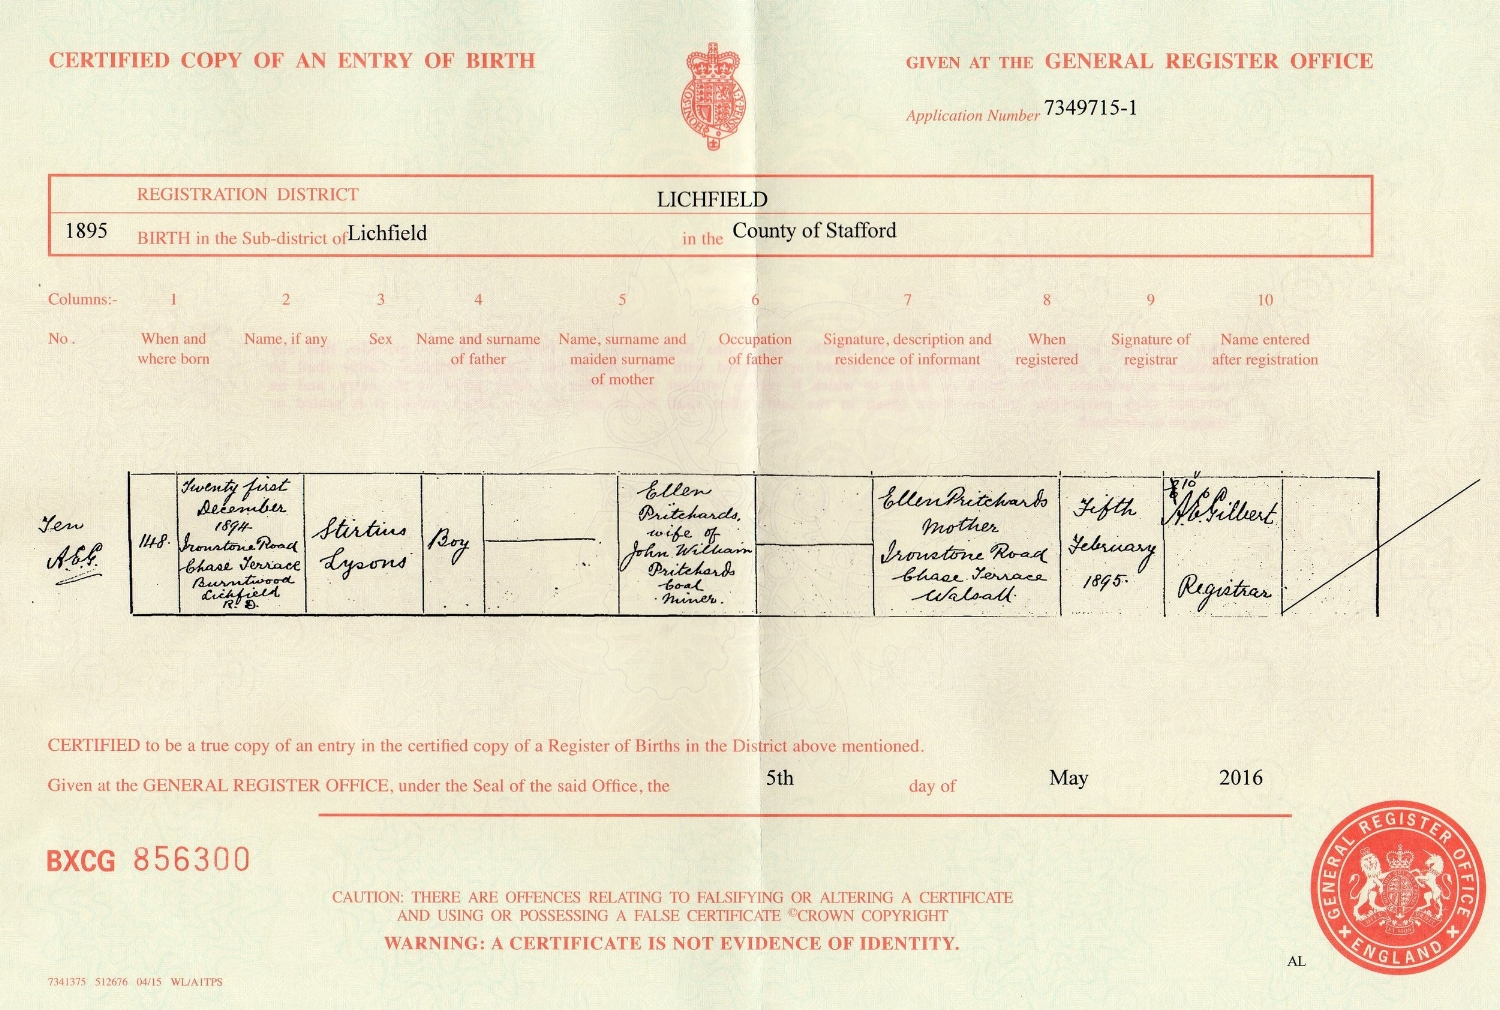 Copy of the Birth Certificate for Nonnie Lysons Pritchard (named Stirtius Lysons on the certificate)